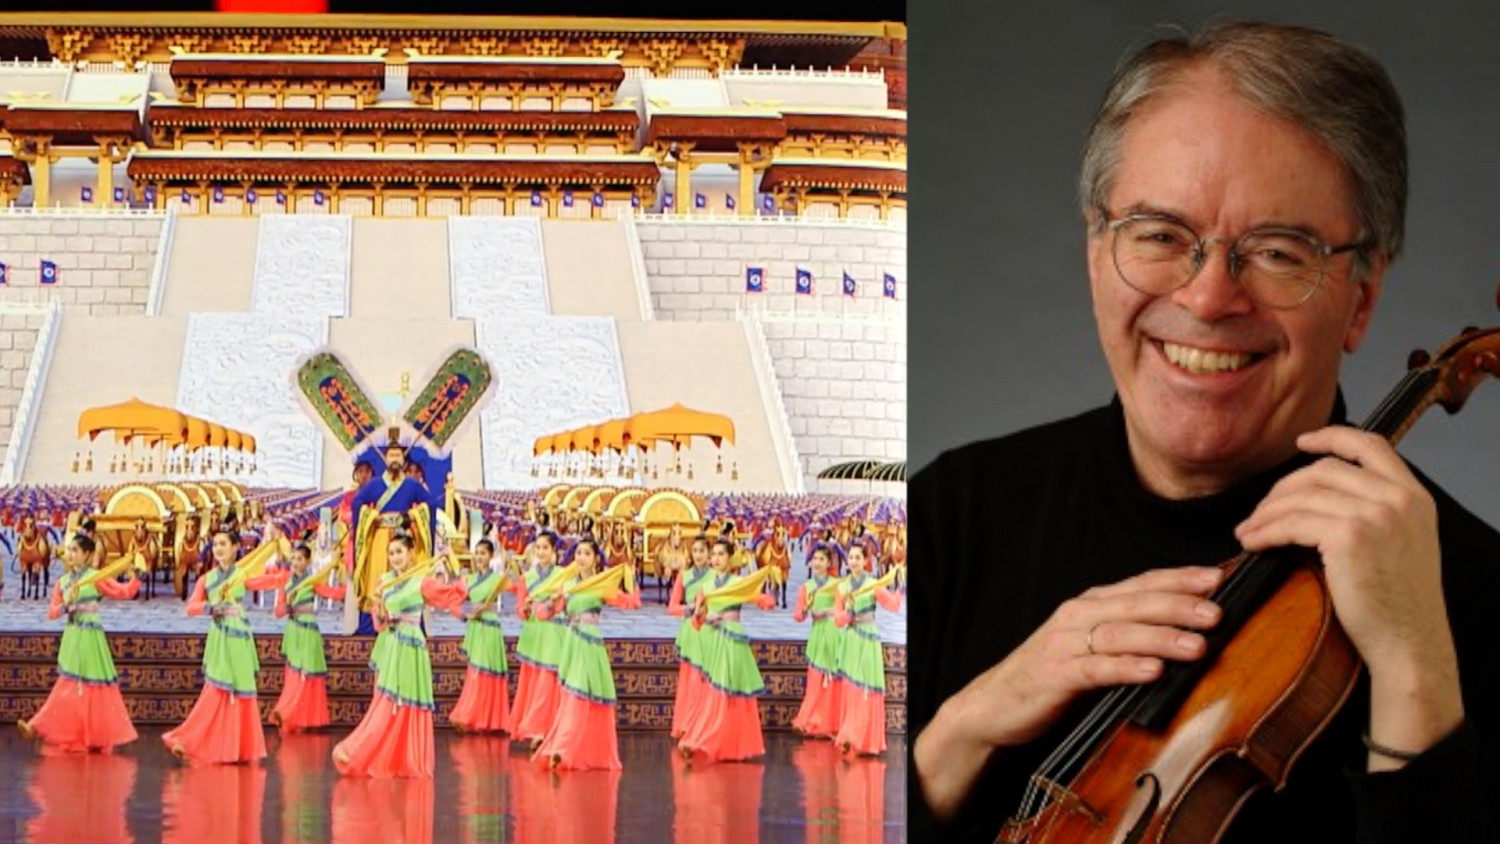 Renowned Violinist Enjoys Shen Yun's Music, Dance, and Production